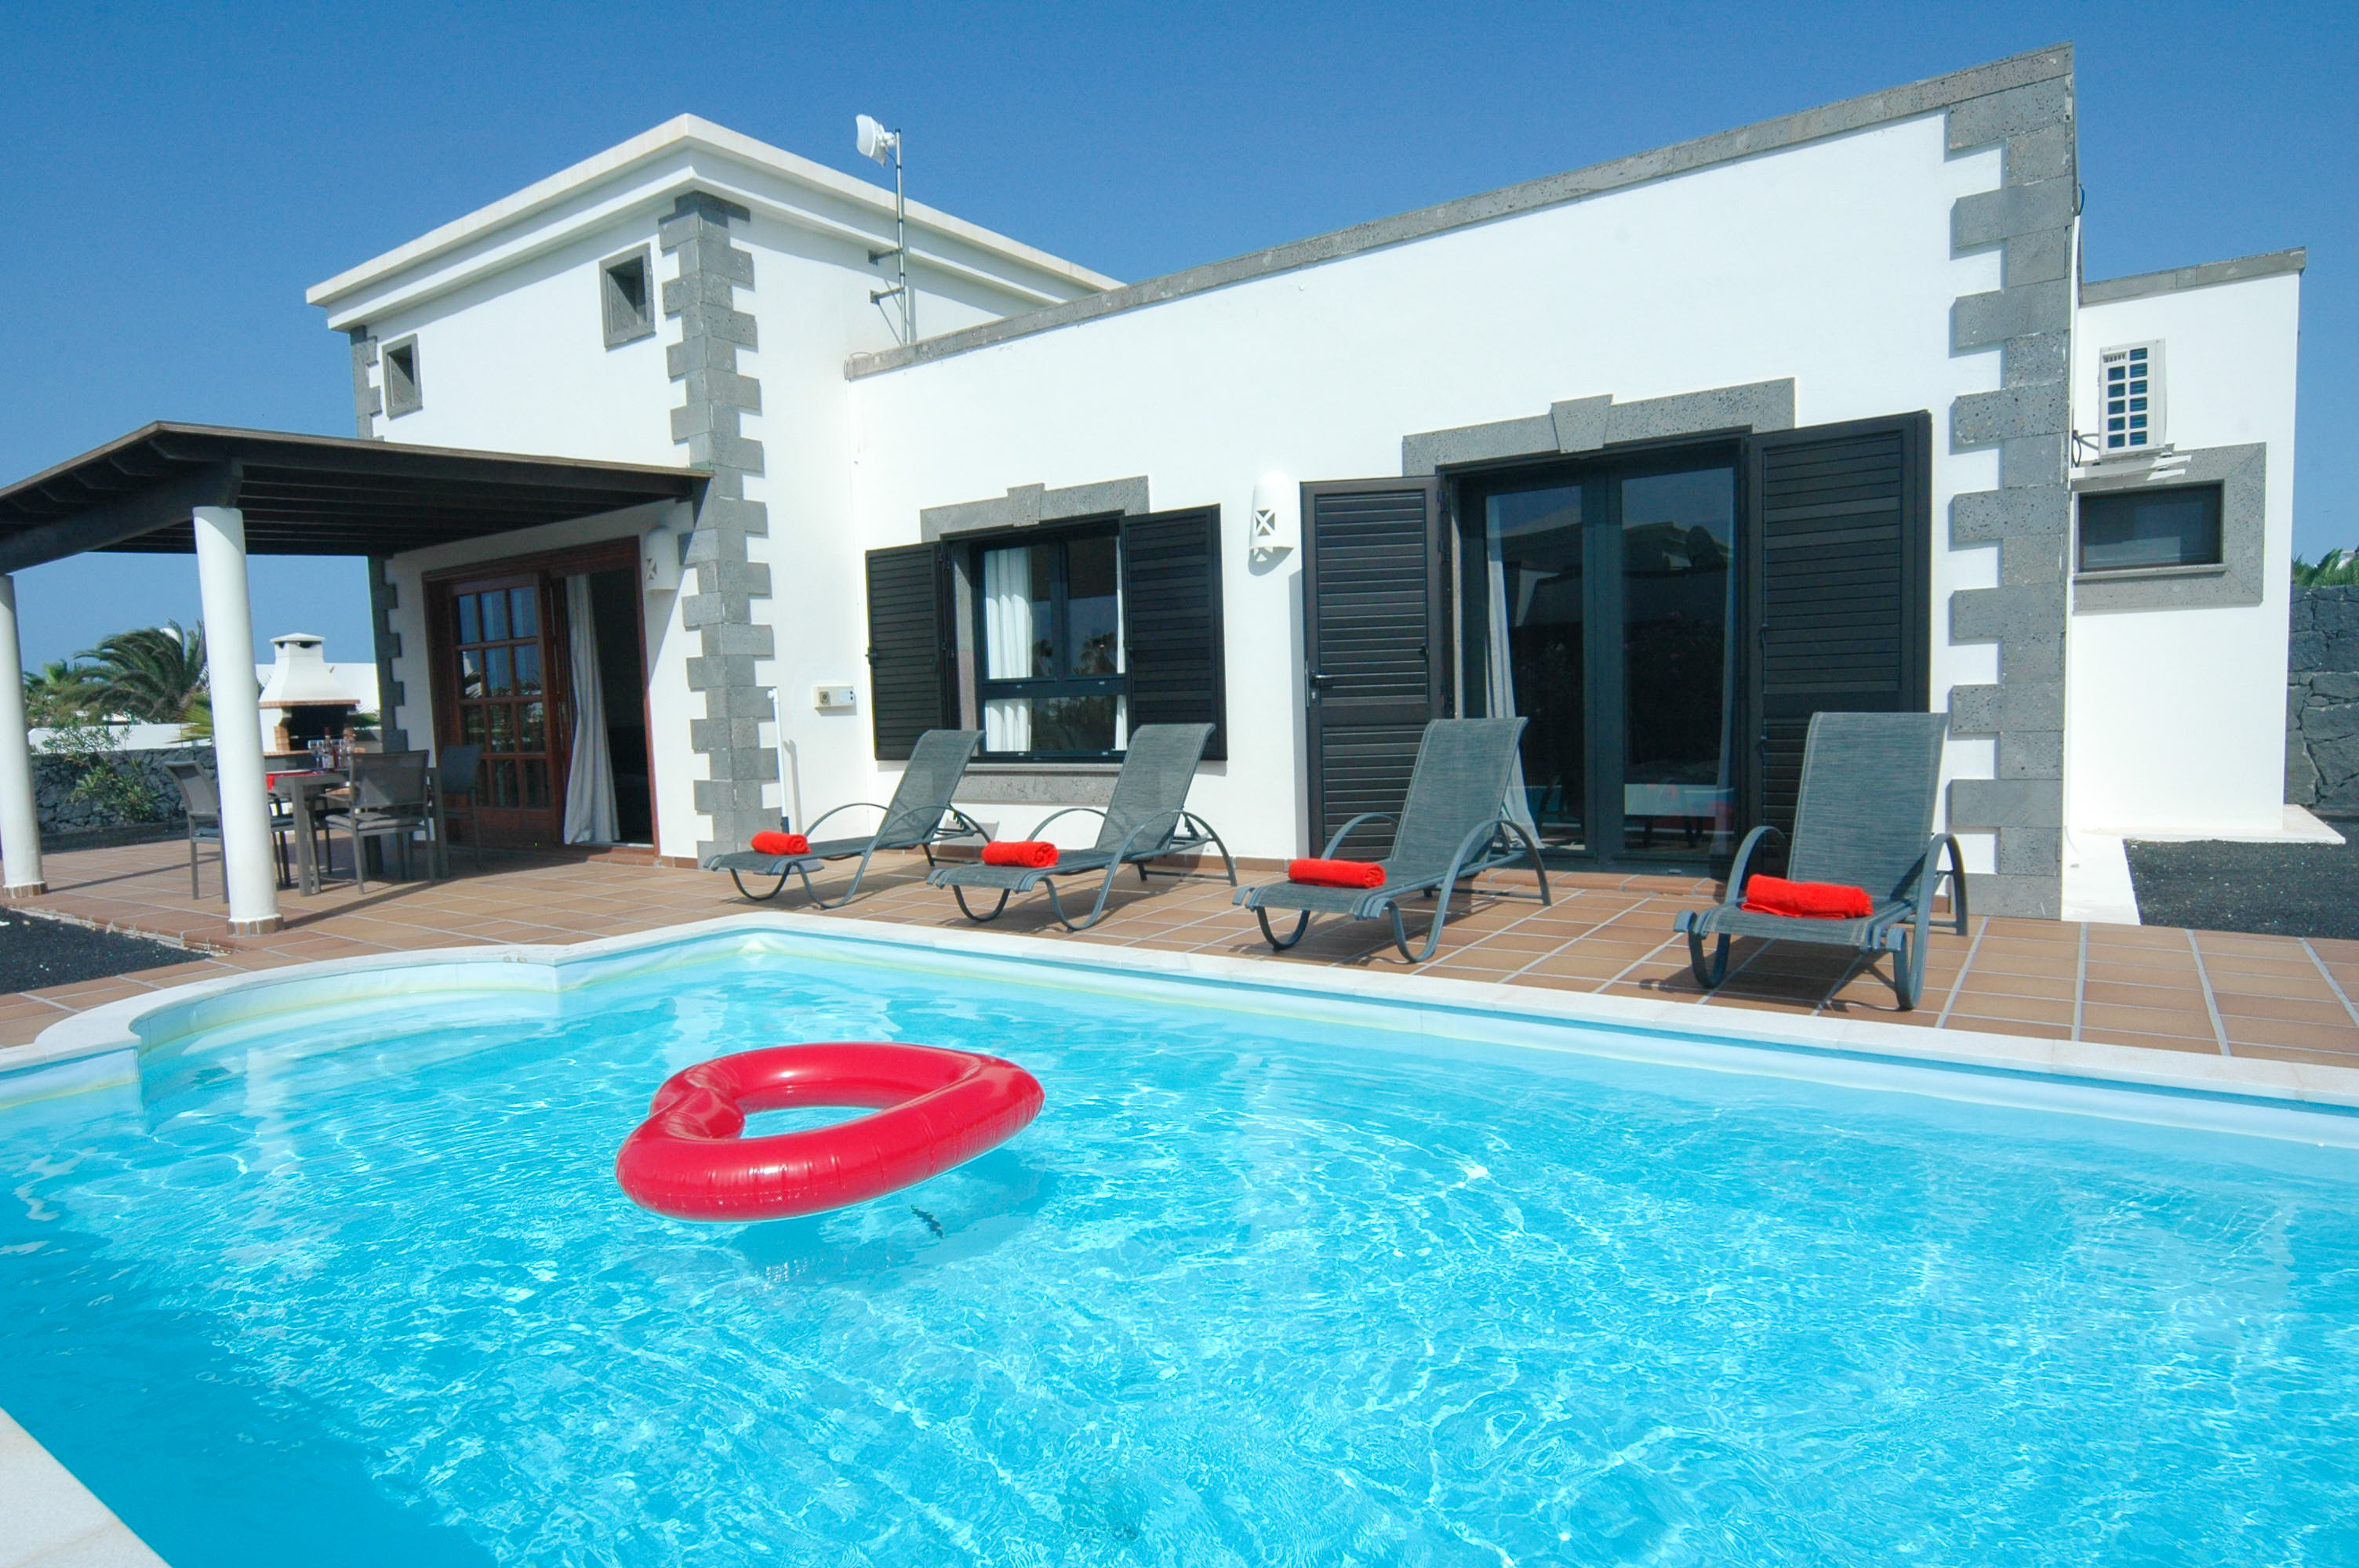 LVC333174 Villa with heated pool in Playa Blanca